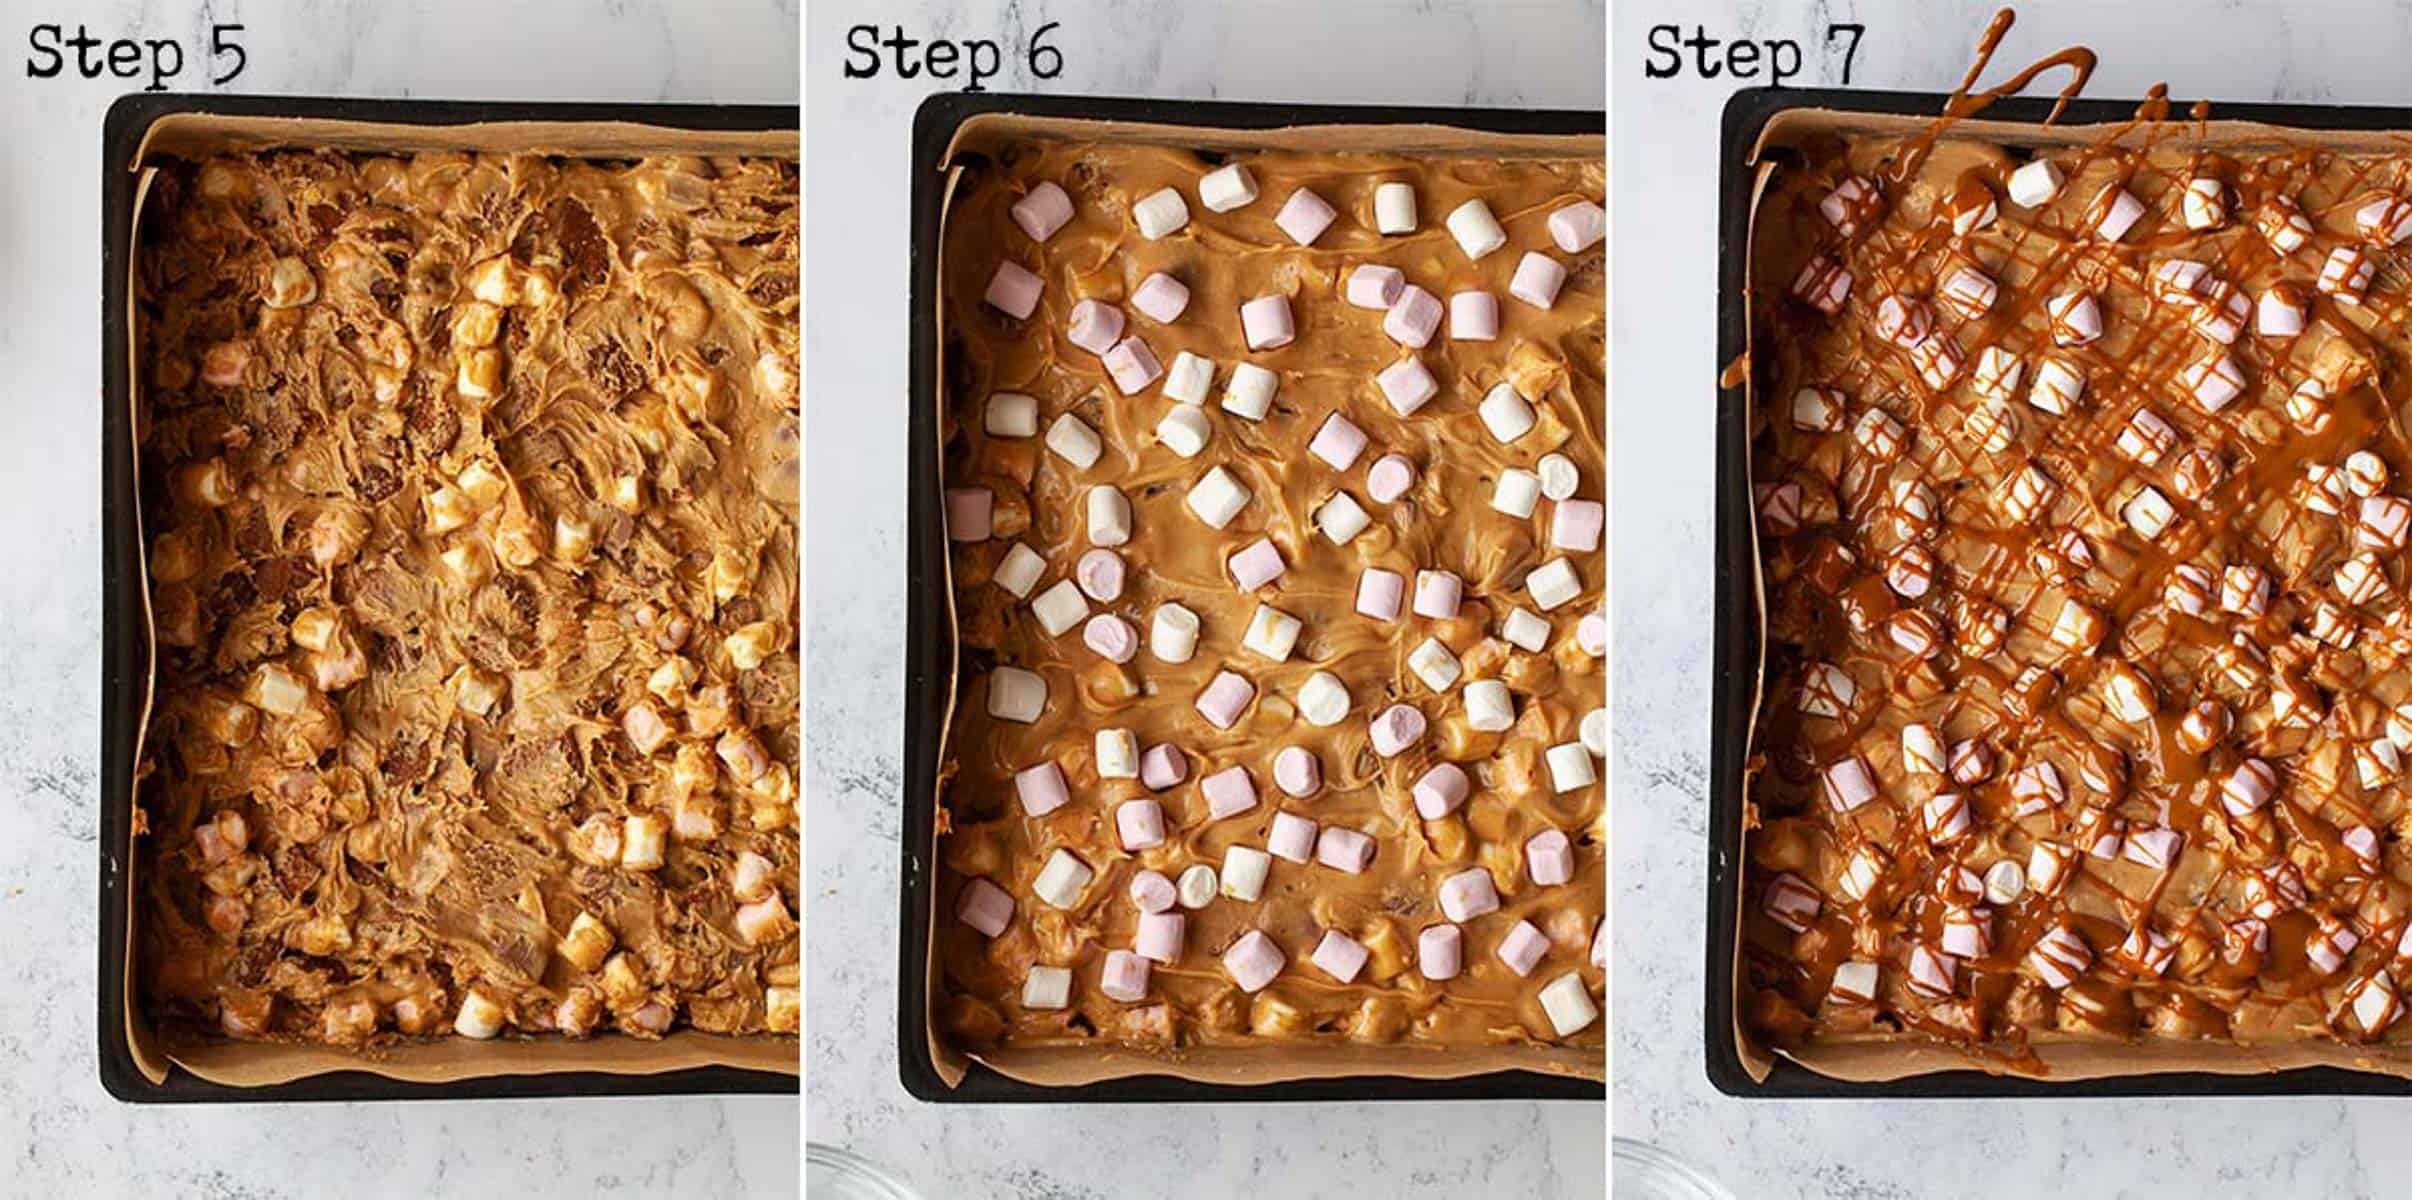 Collage of images showing a chocolate no-bake dessert being assembled in a tin